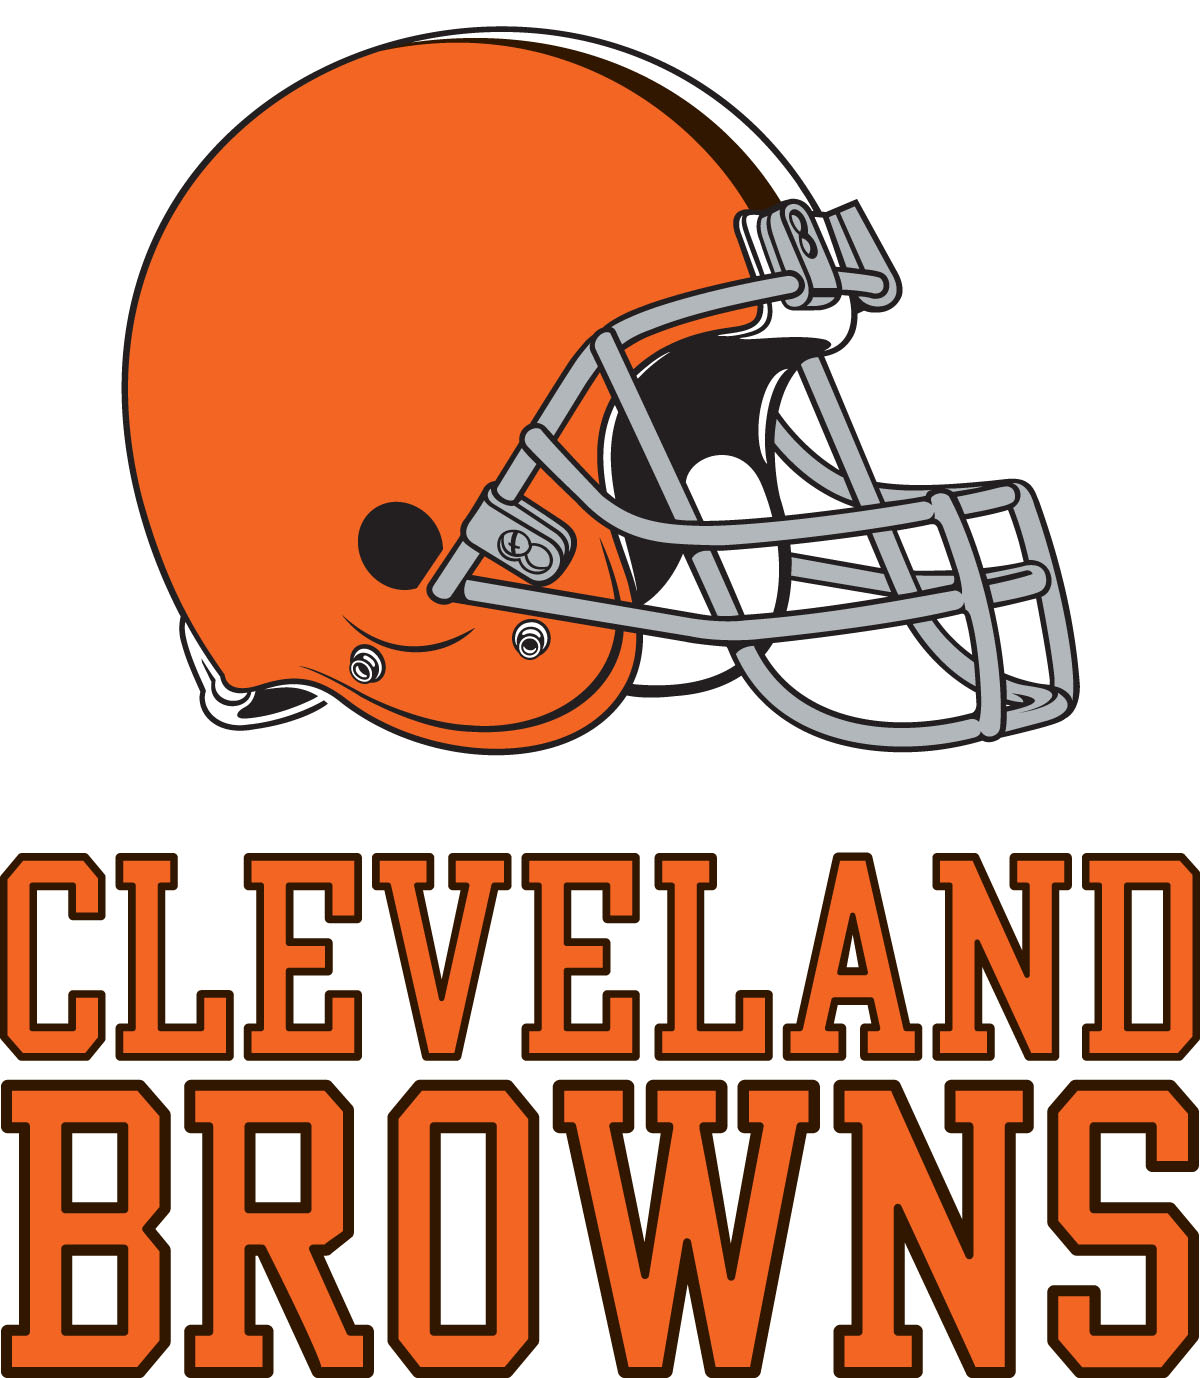 Cleveland browns schedule 2012 13